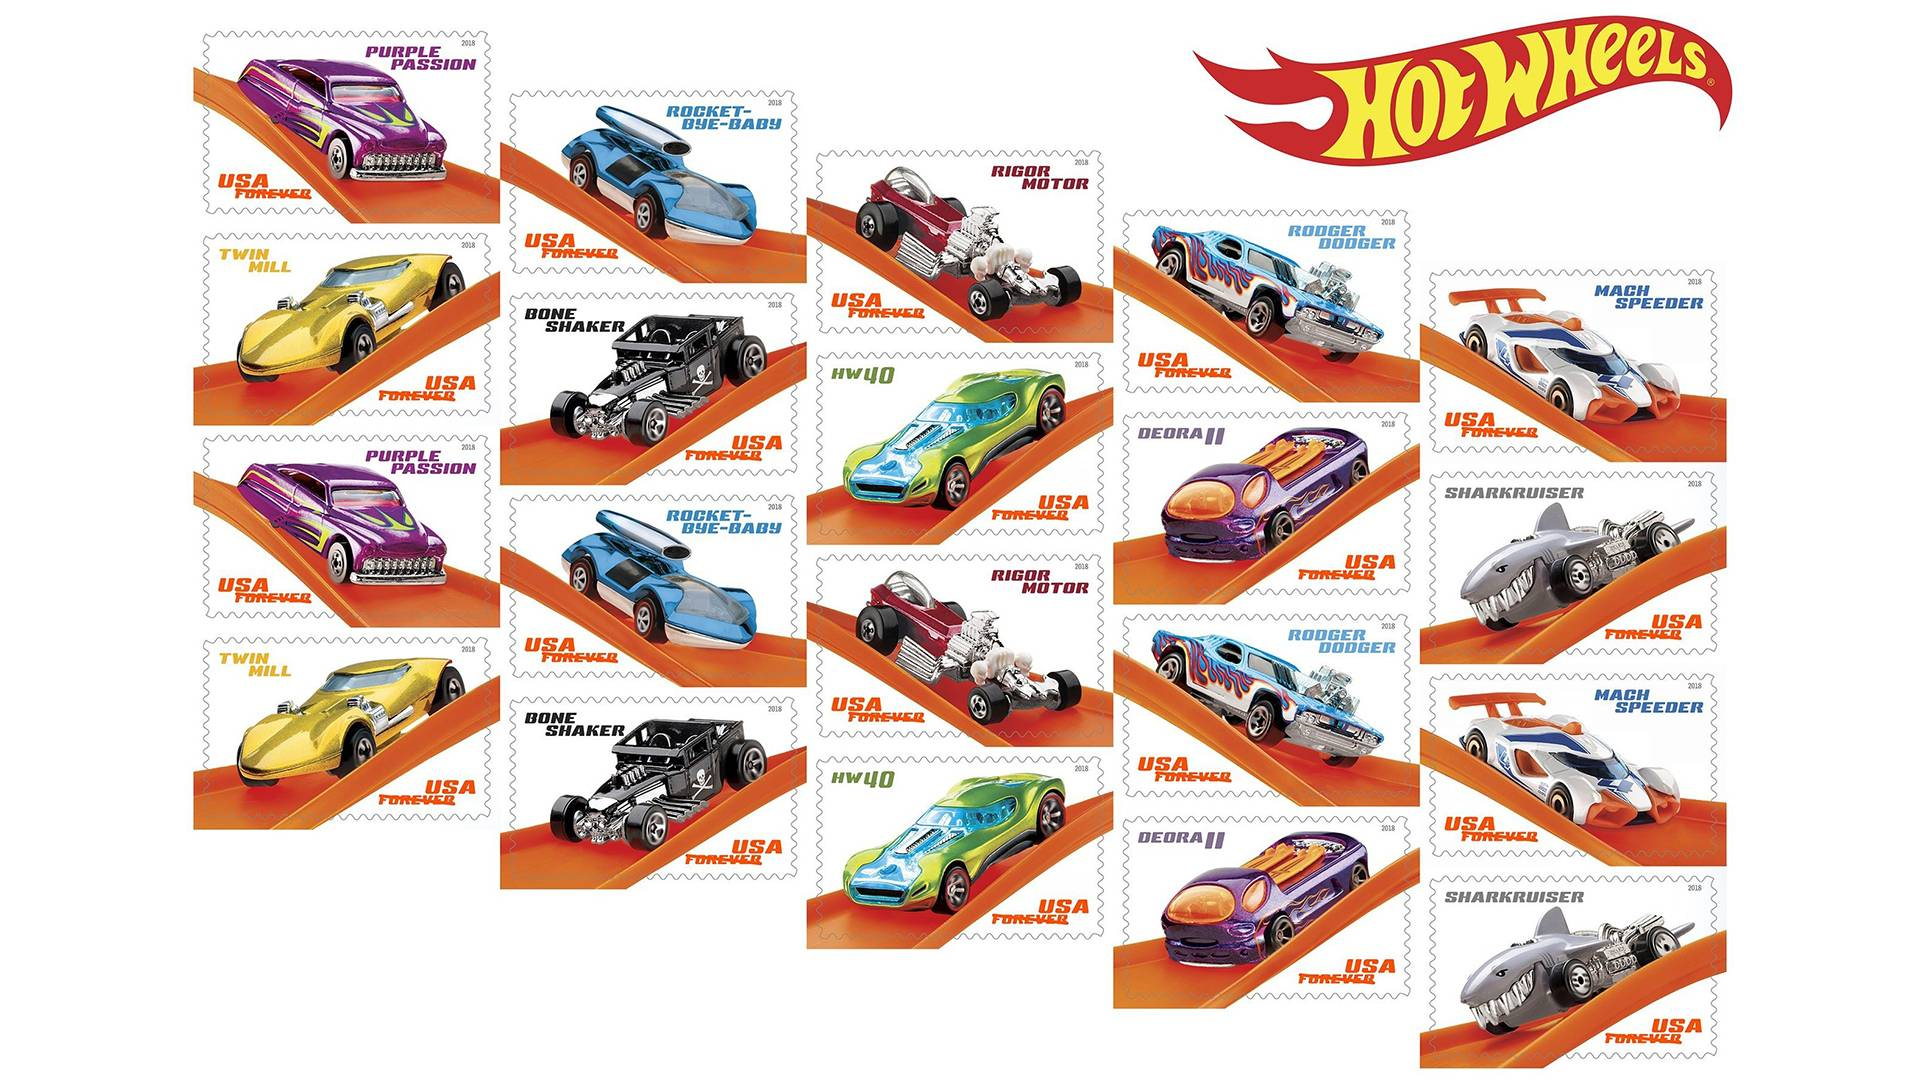 Hot Wheels Commemorative Stamps Will Spruce Up Your Snail Mail